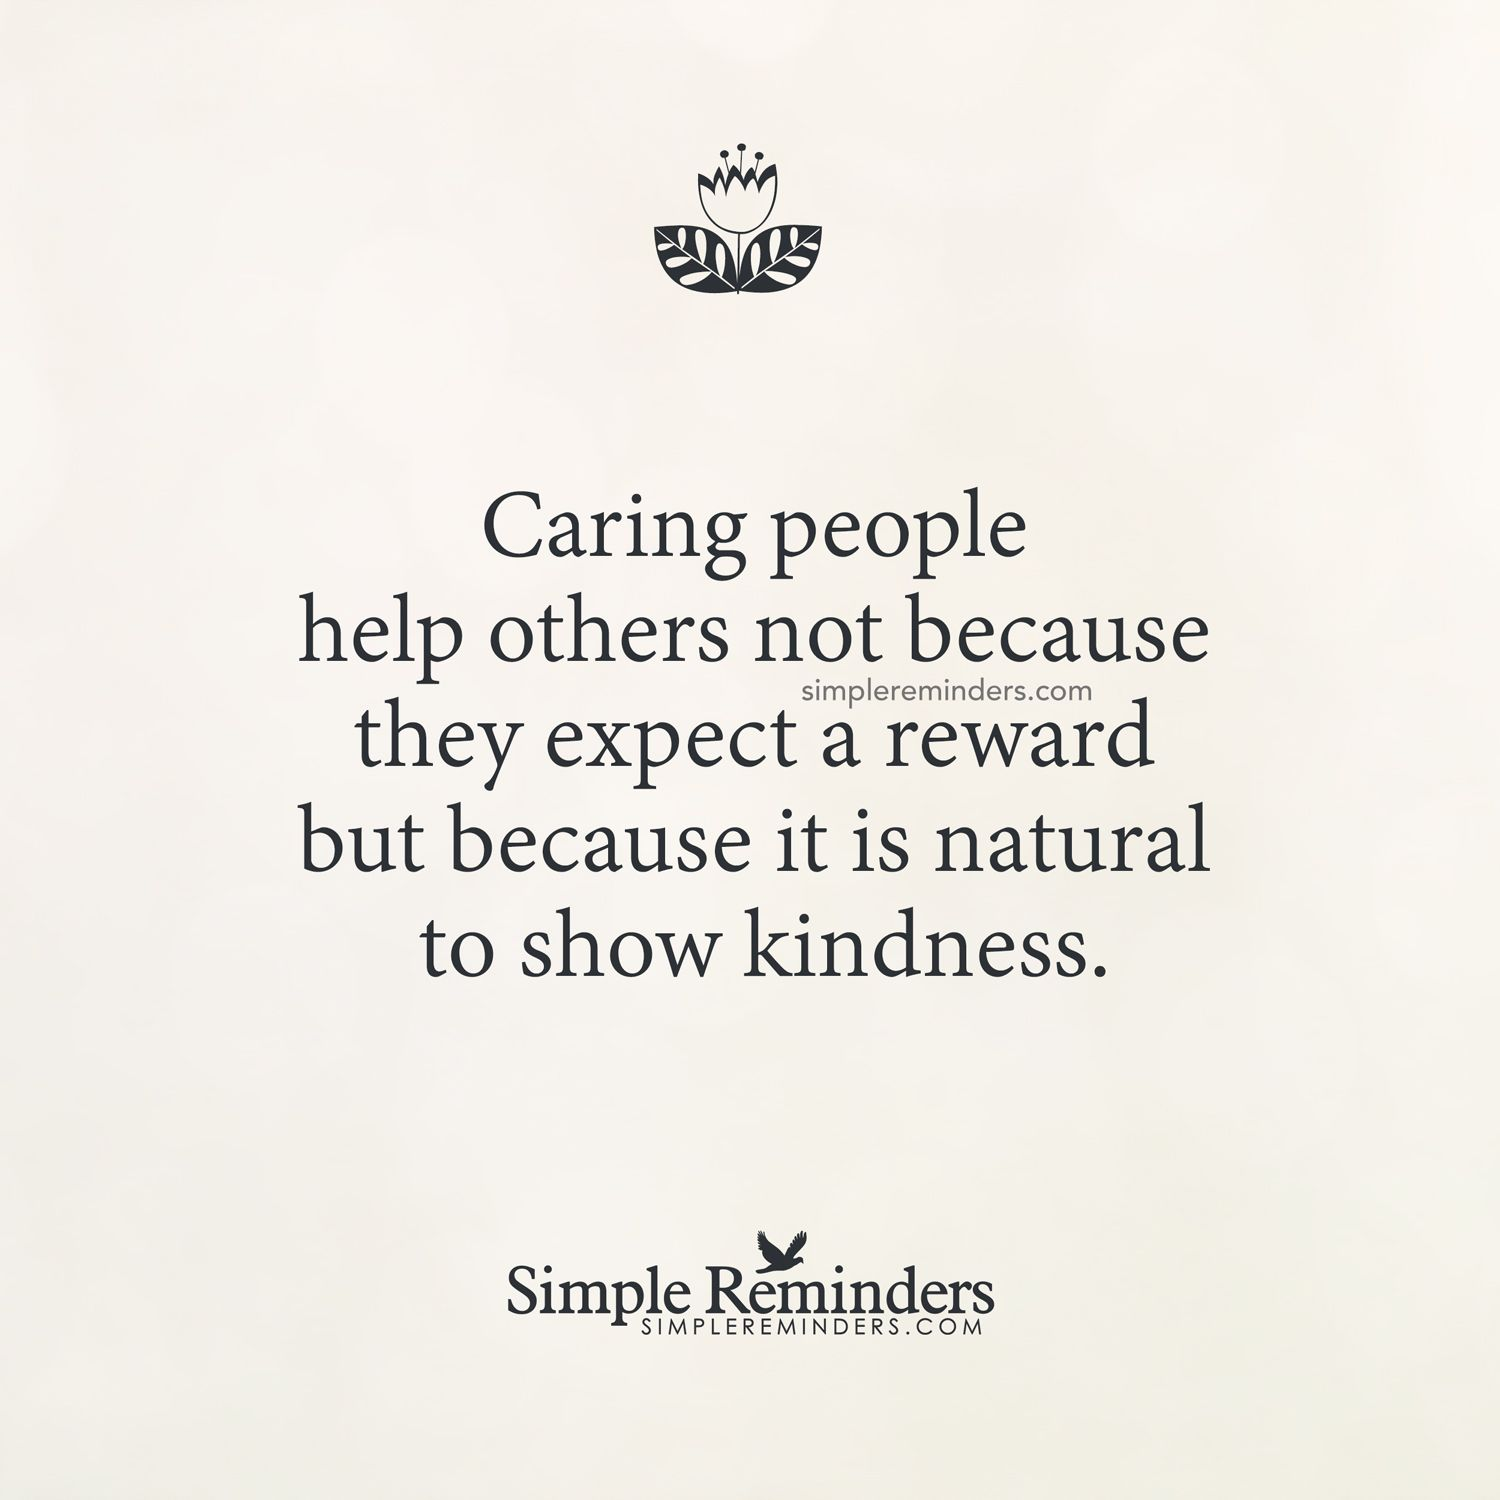 Caring people help others because it is natural to show kindness, not for the rewards behind it